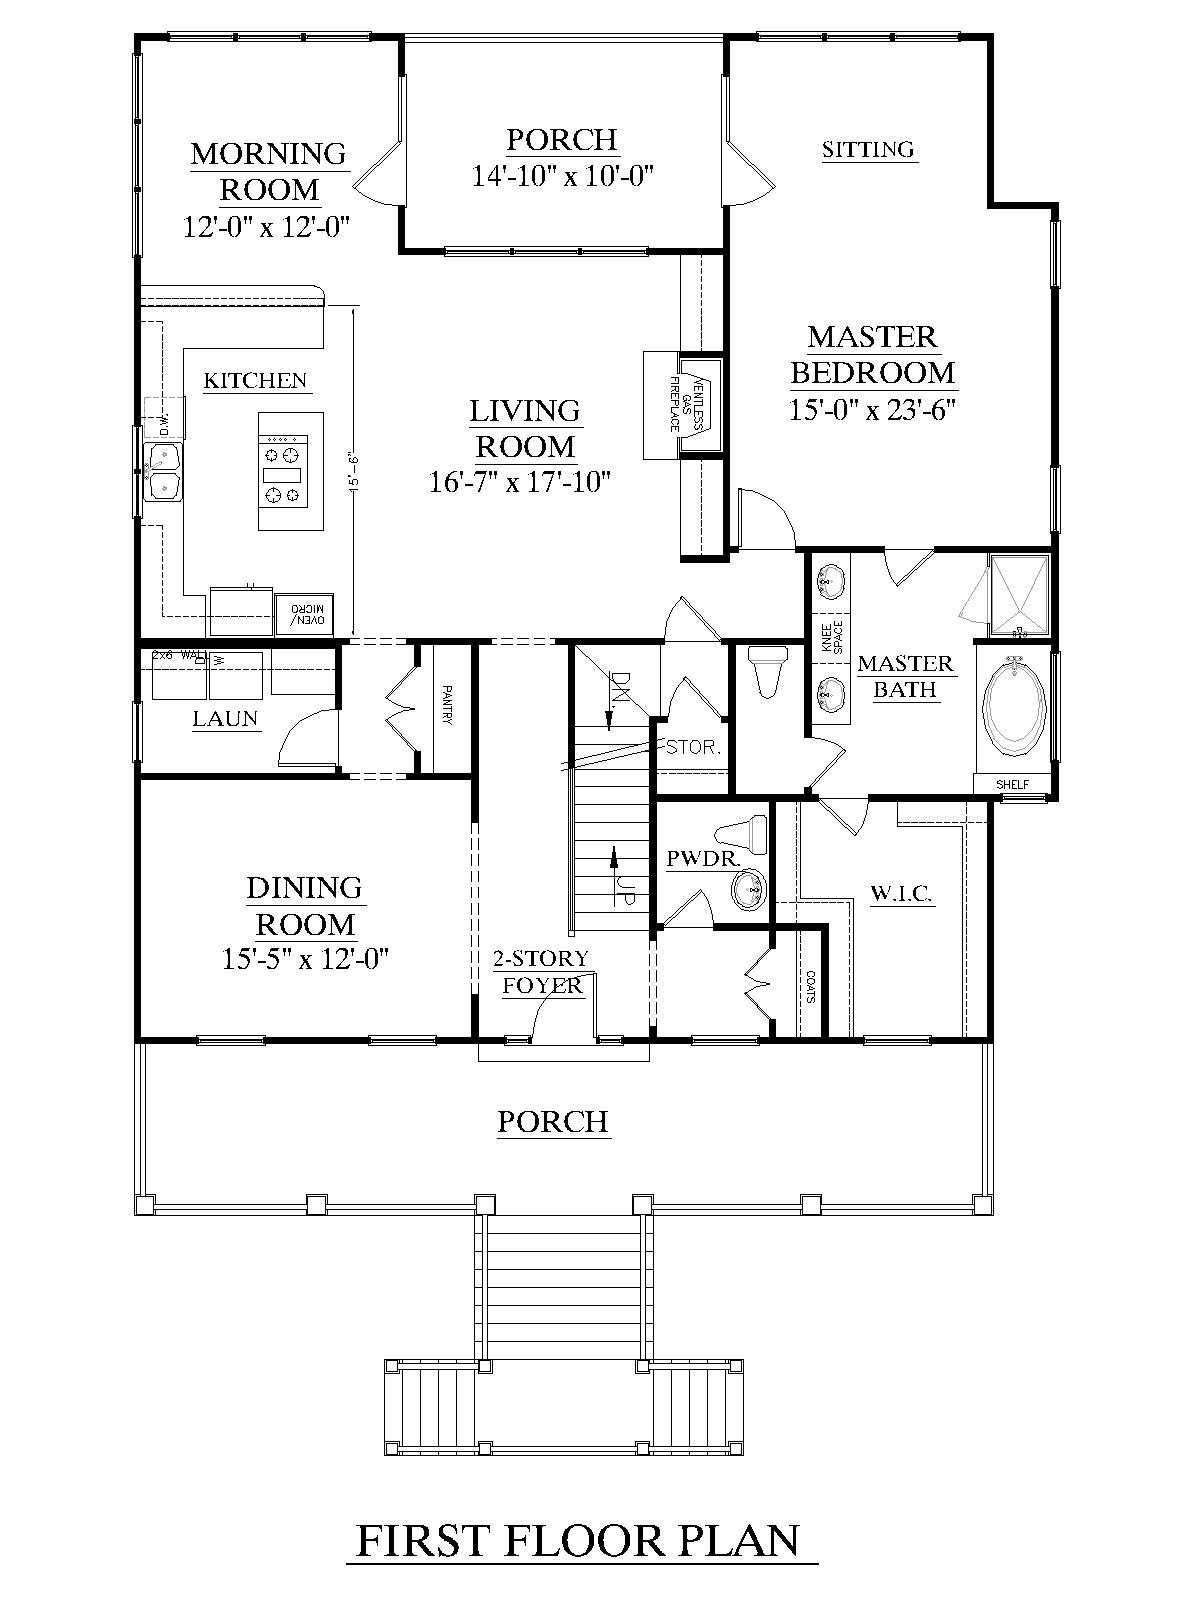 Southern Heritage Home Designs House Plan 3247 A The Edisto A House Plans Simple House Plans Best House Plans